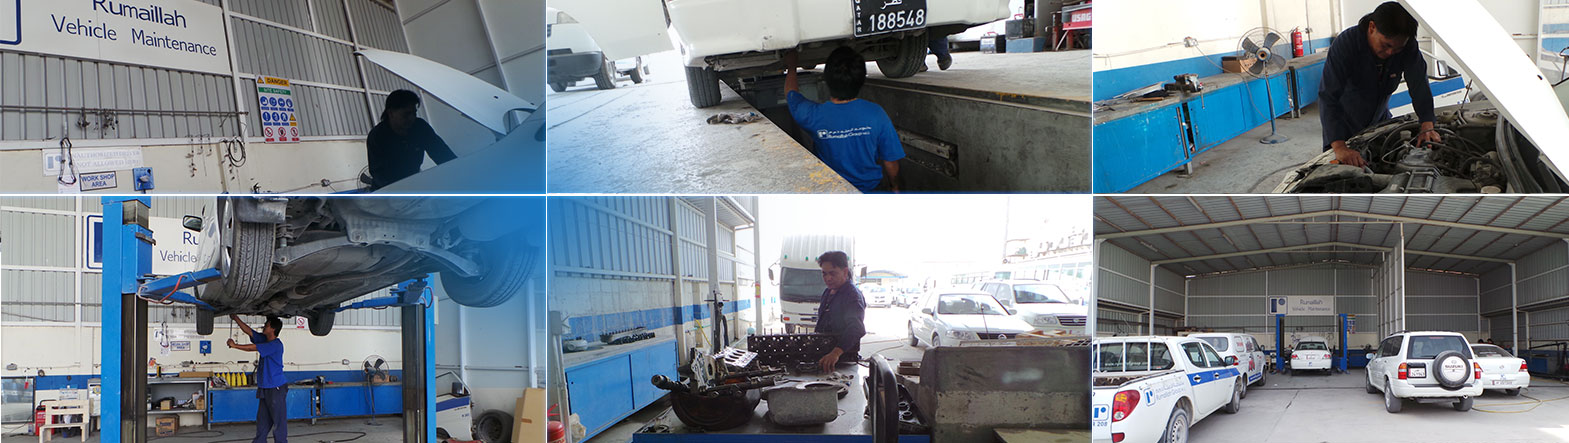 Rumaillah Group cubicles and vehicle maintenance